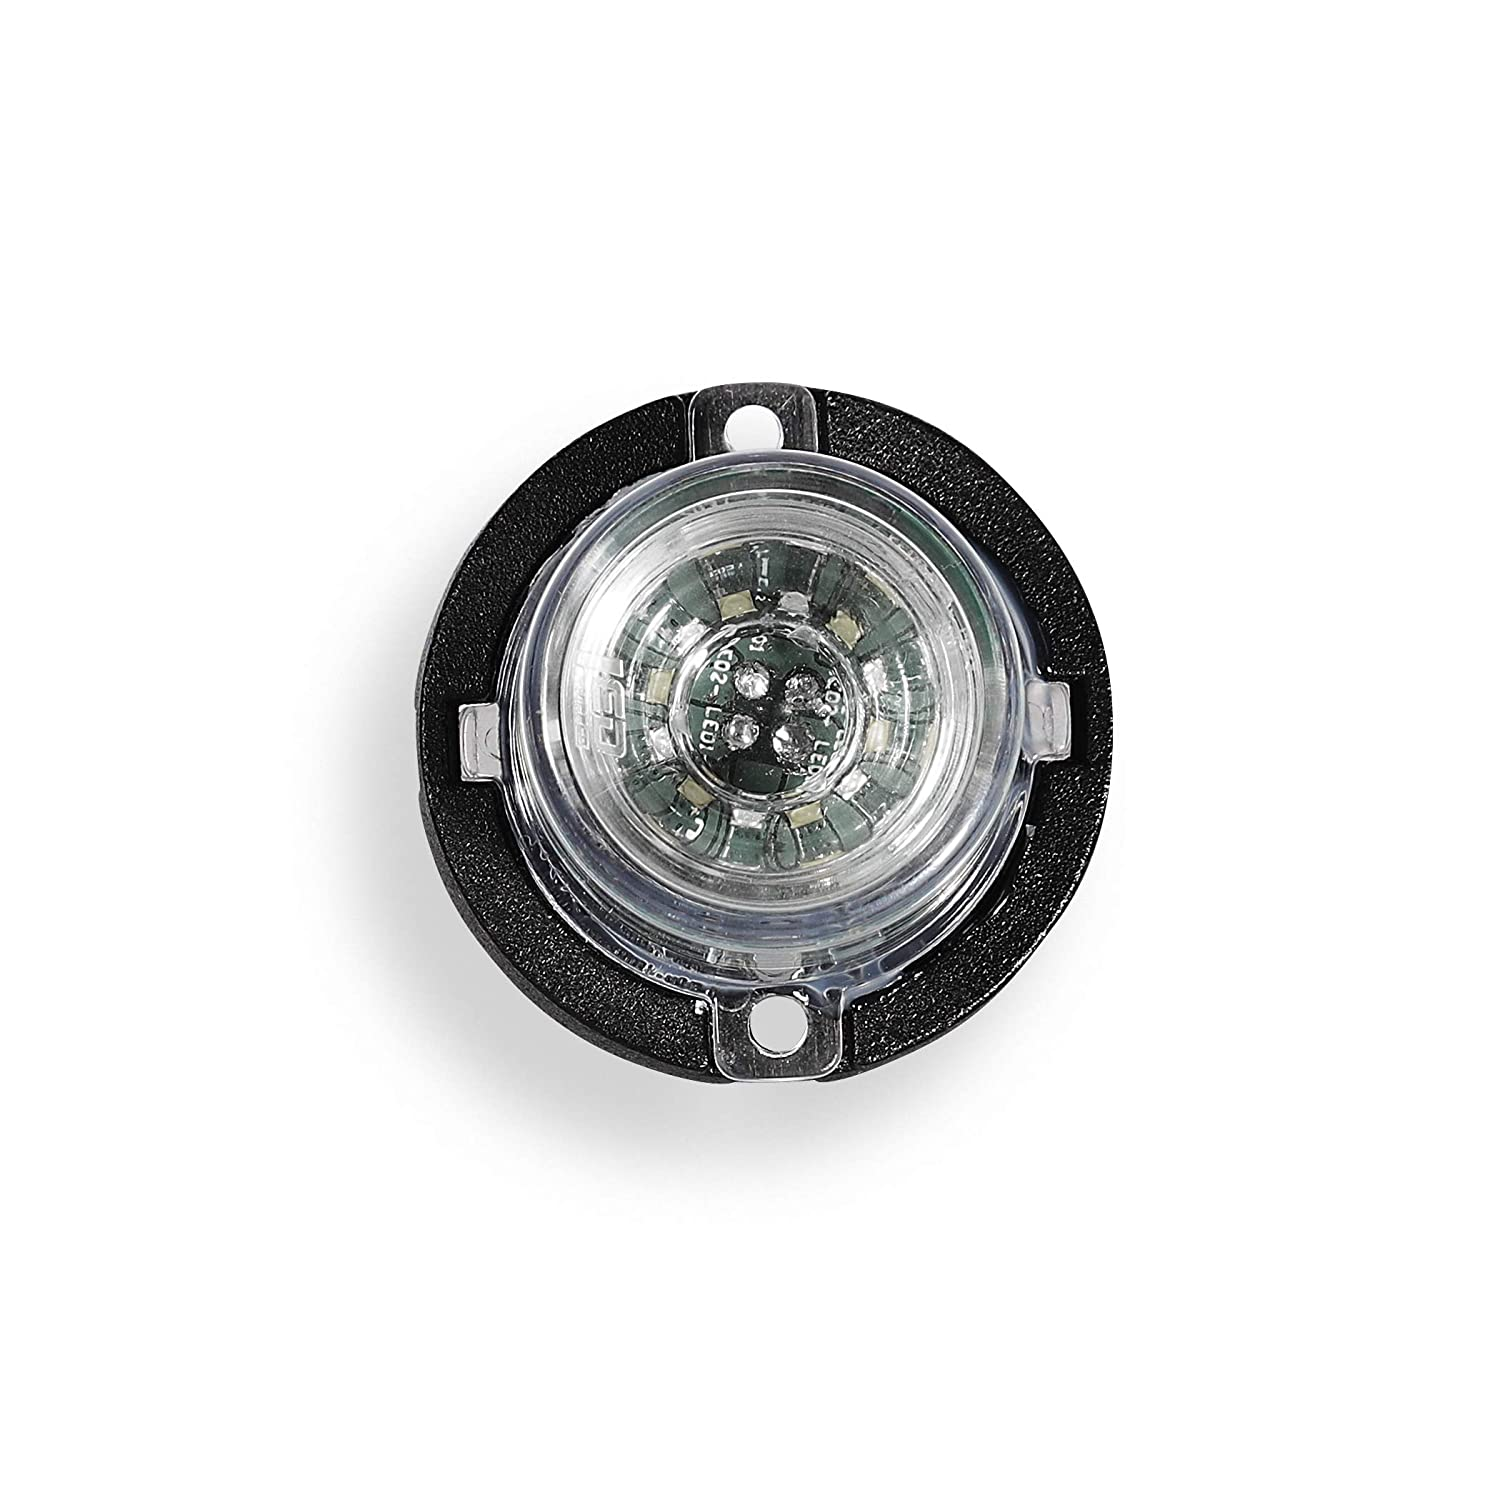 Predator Duo LED Hideaway Strobe Light WITH WHITE CRUISE MODE White